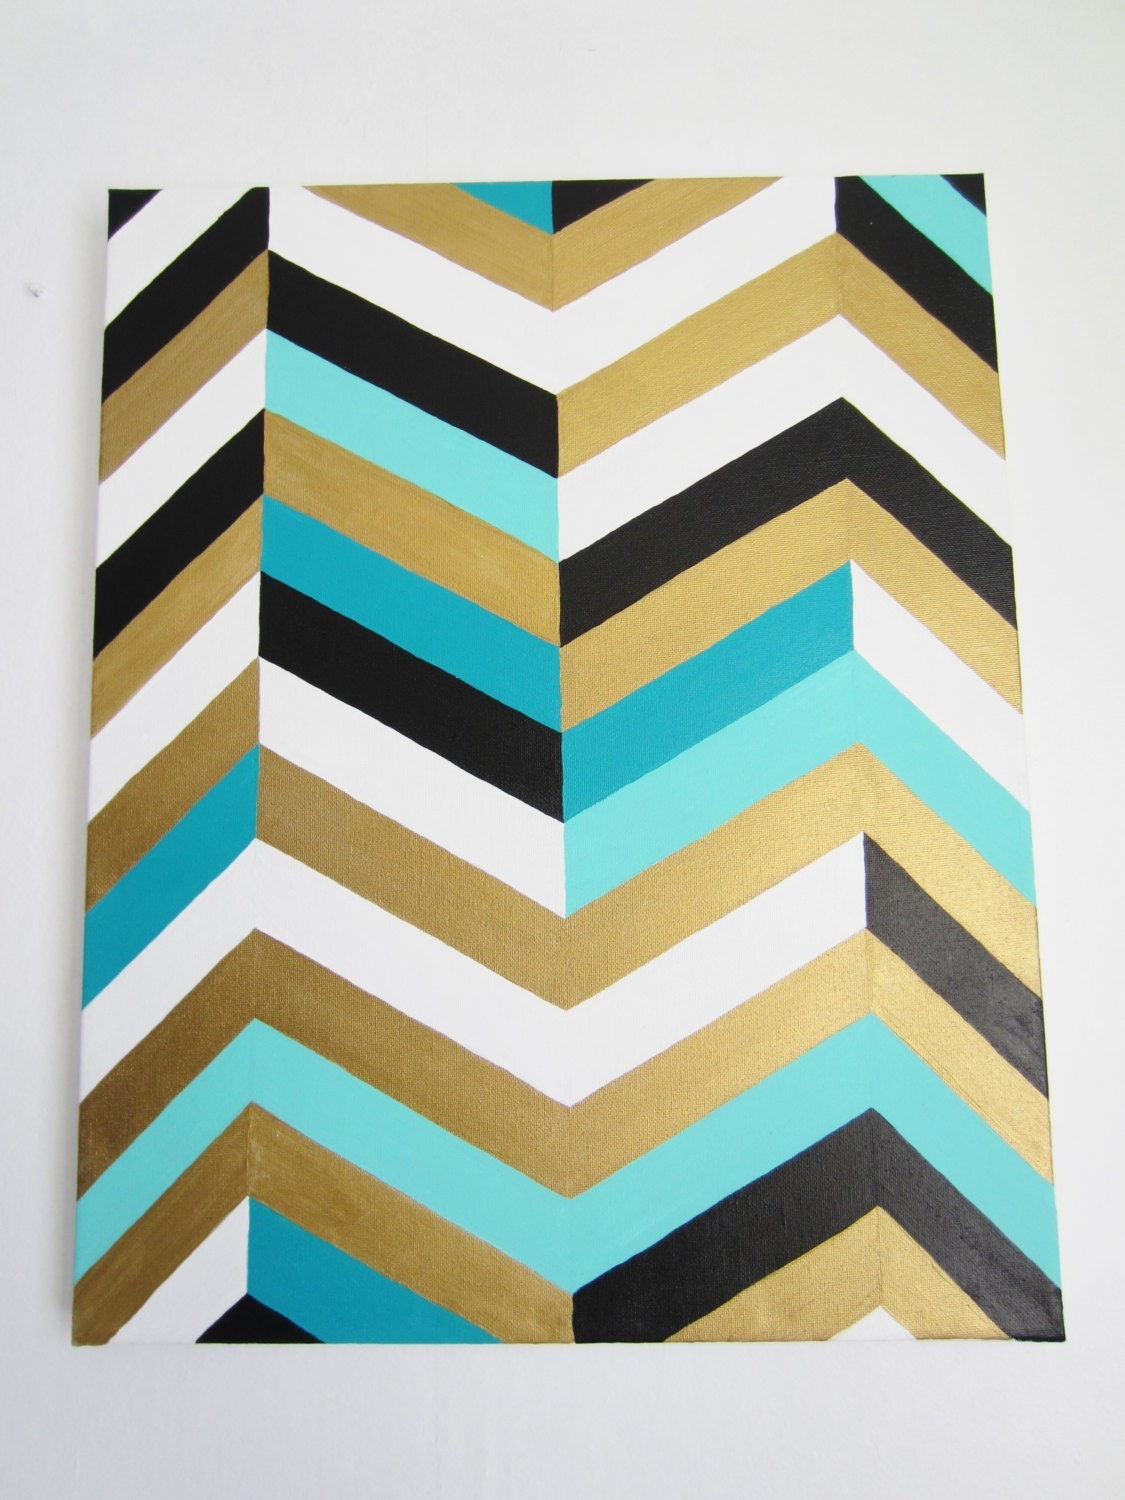 chevron template for painting - chevron art painting 16x20 gold teal turquoise black and